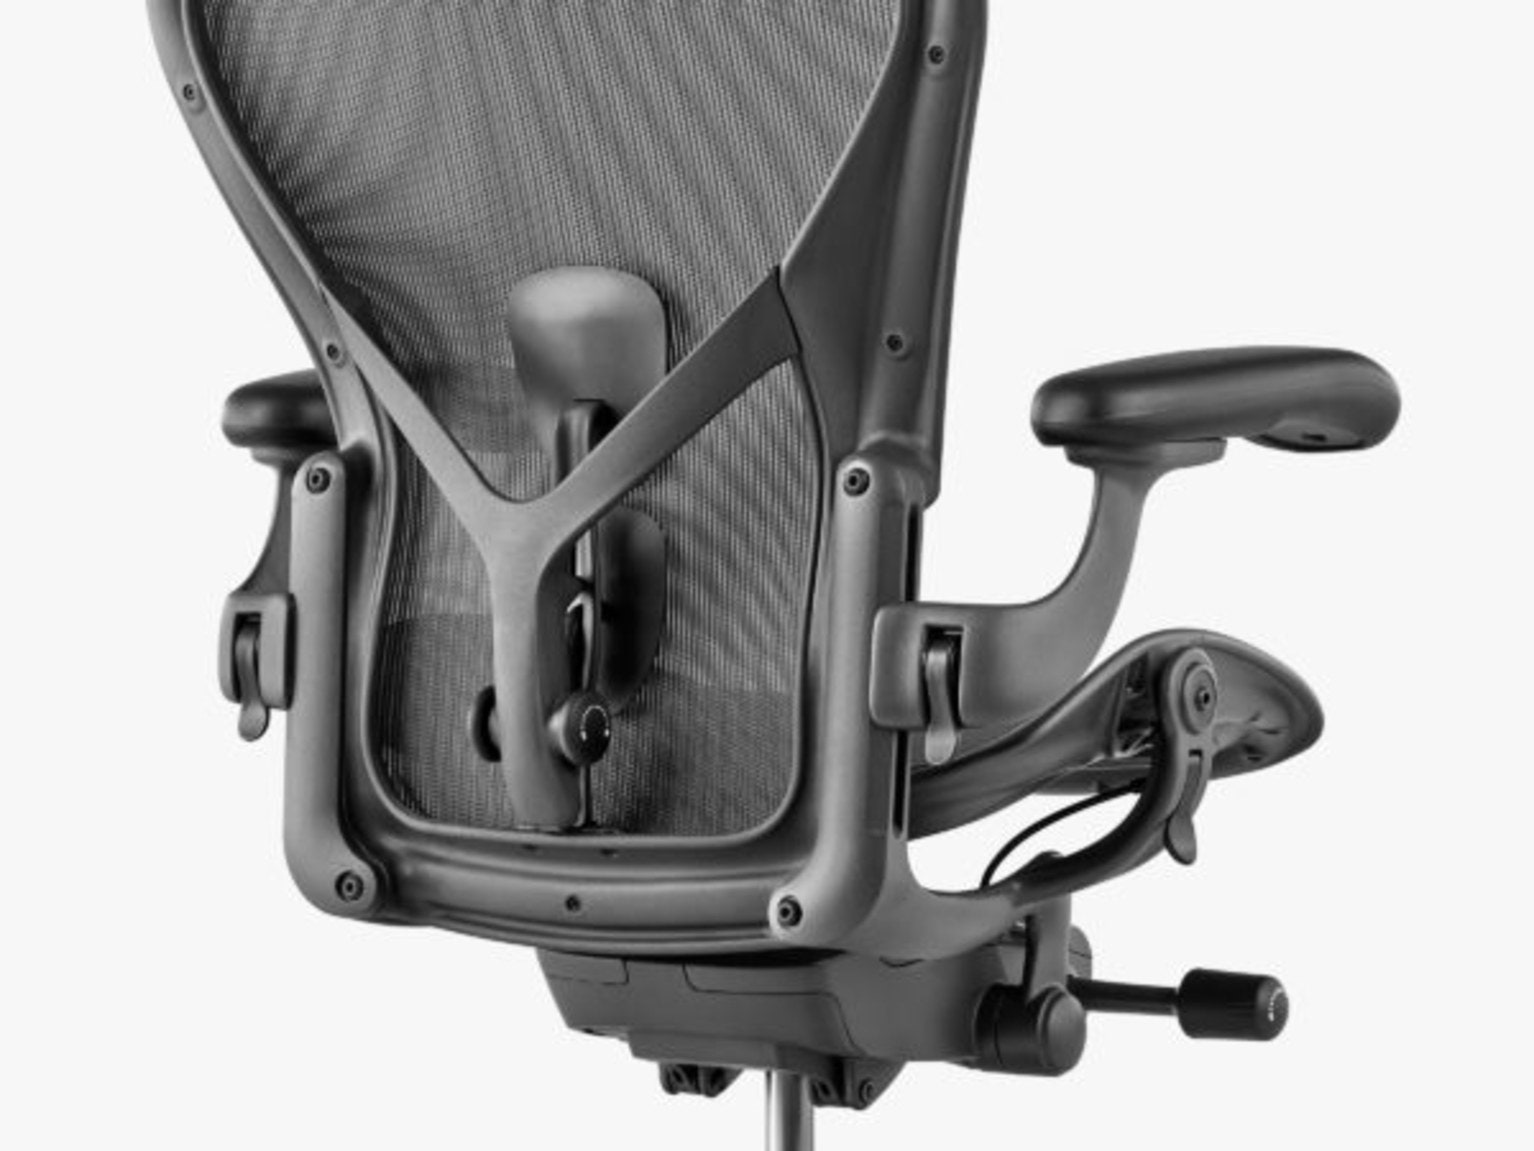 ergonomic chair repair cover rental pittsburgh herman miller just redesigned its iconic aeron wired